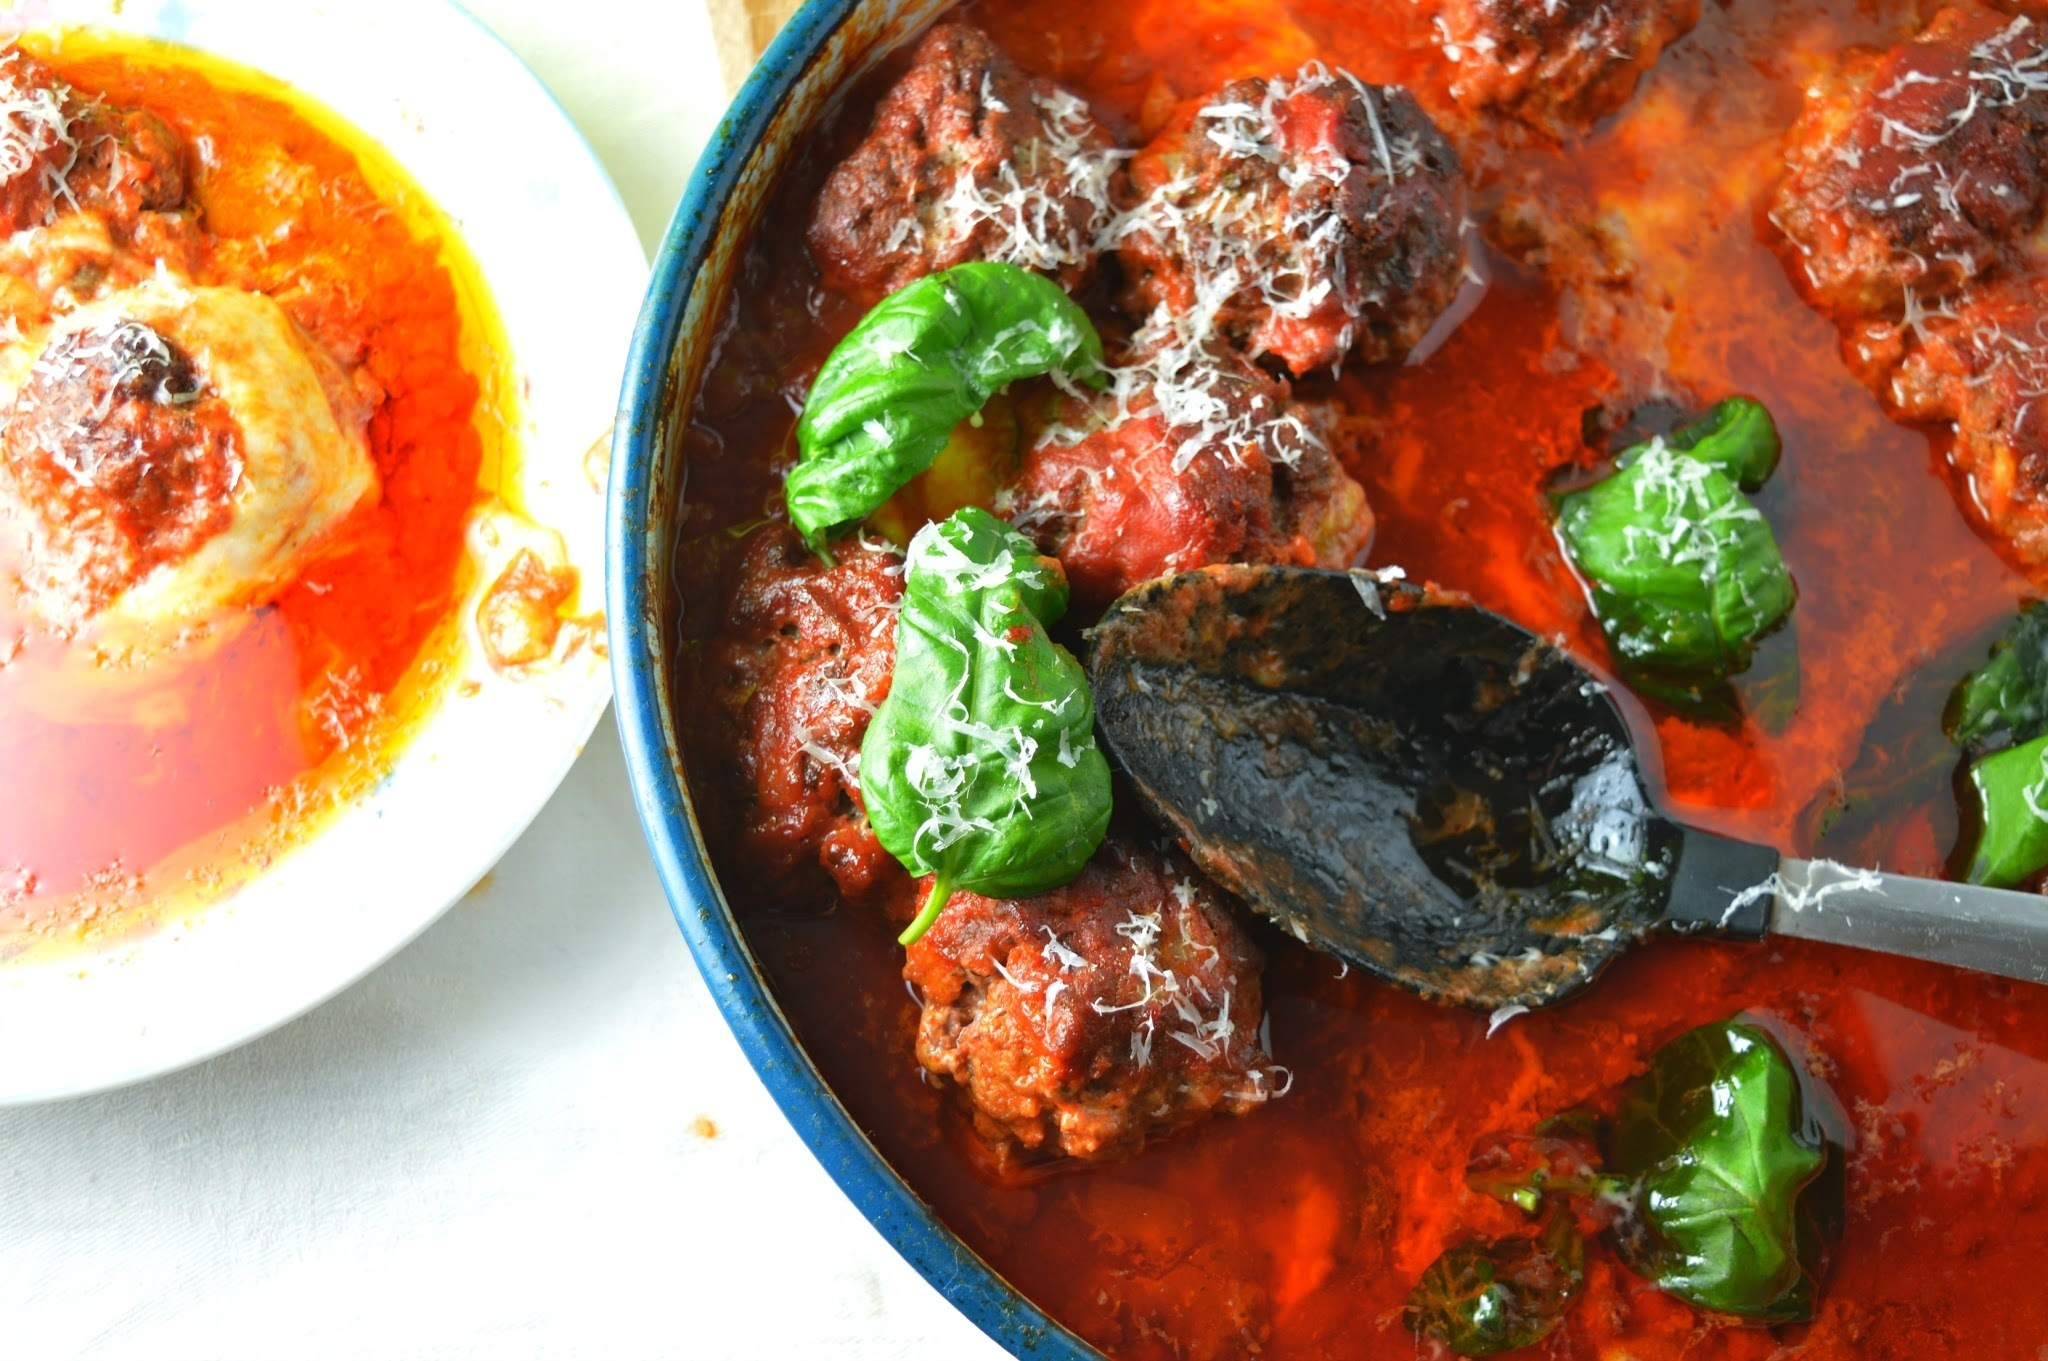 Mozzarella & Parmesan Cheese Meatballs in Sweet Tomato Sauce